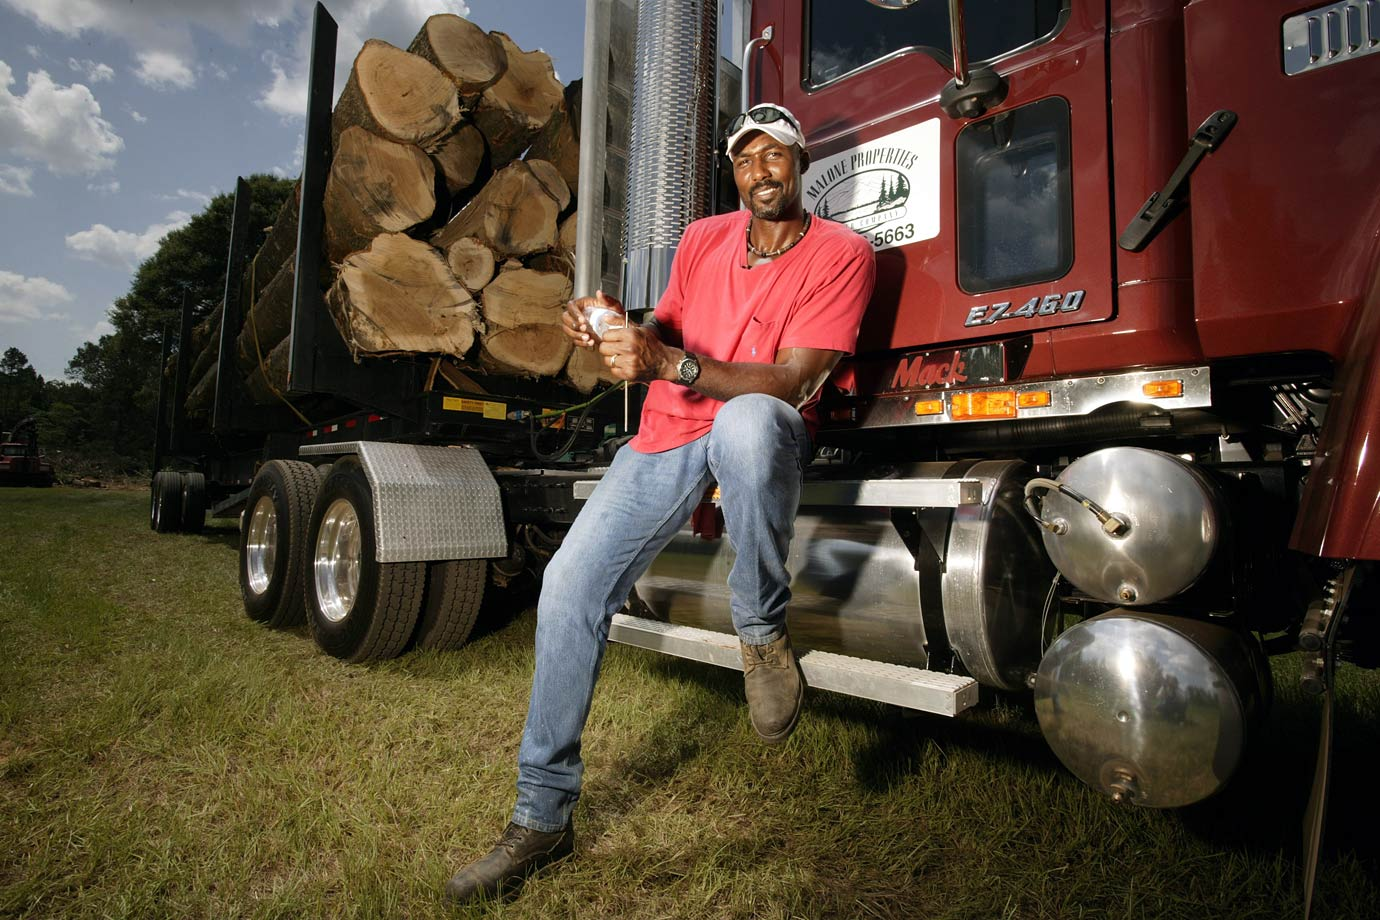 While most players spend their offseason at the beach or filming commercials, Karl Malone enjoyed driving around the country in his 18-wheeler.